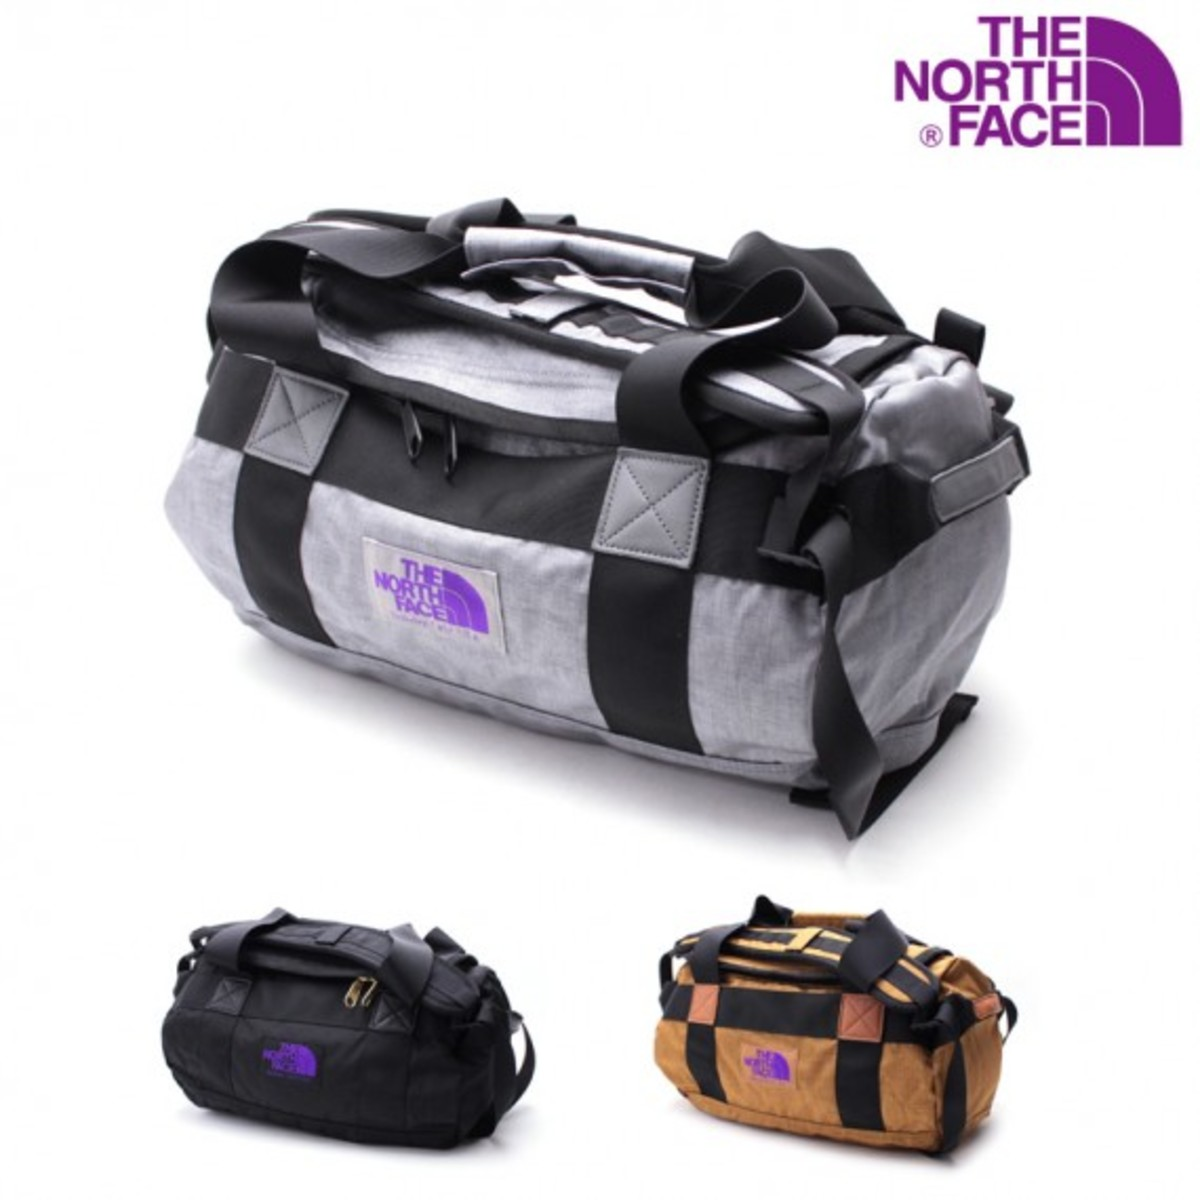 the-north-face-purple-label-fall-2012-bag-collection-01